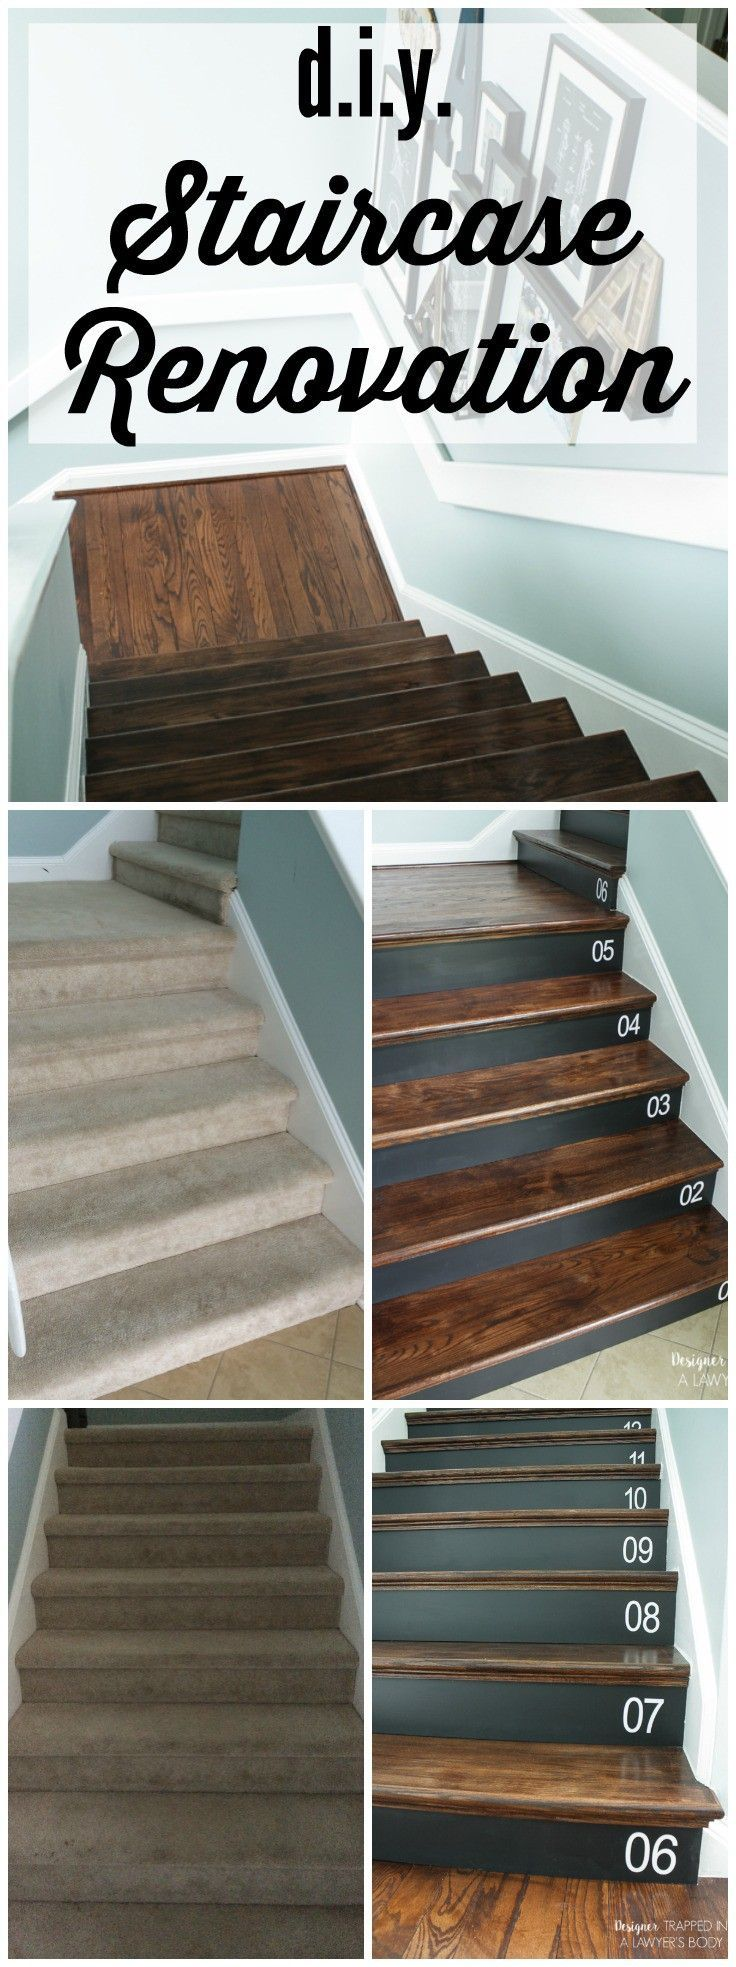 298 Best Staircases Images On Pinterest   Banisters, Basement Ideas And  Basement Stair